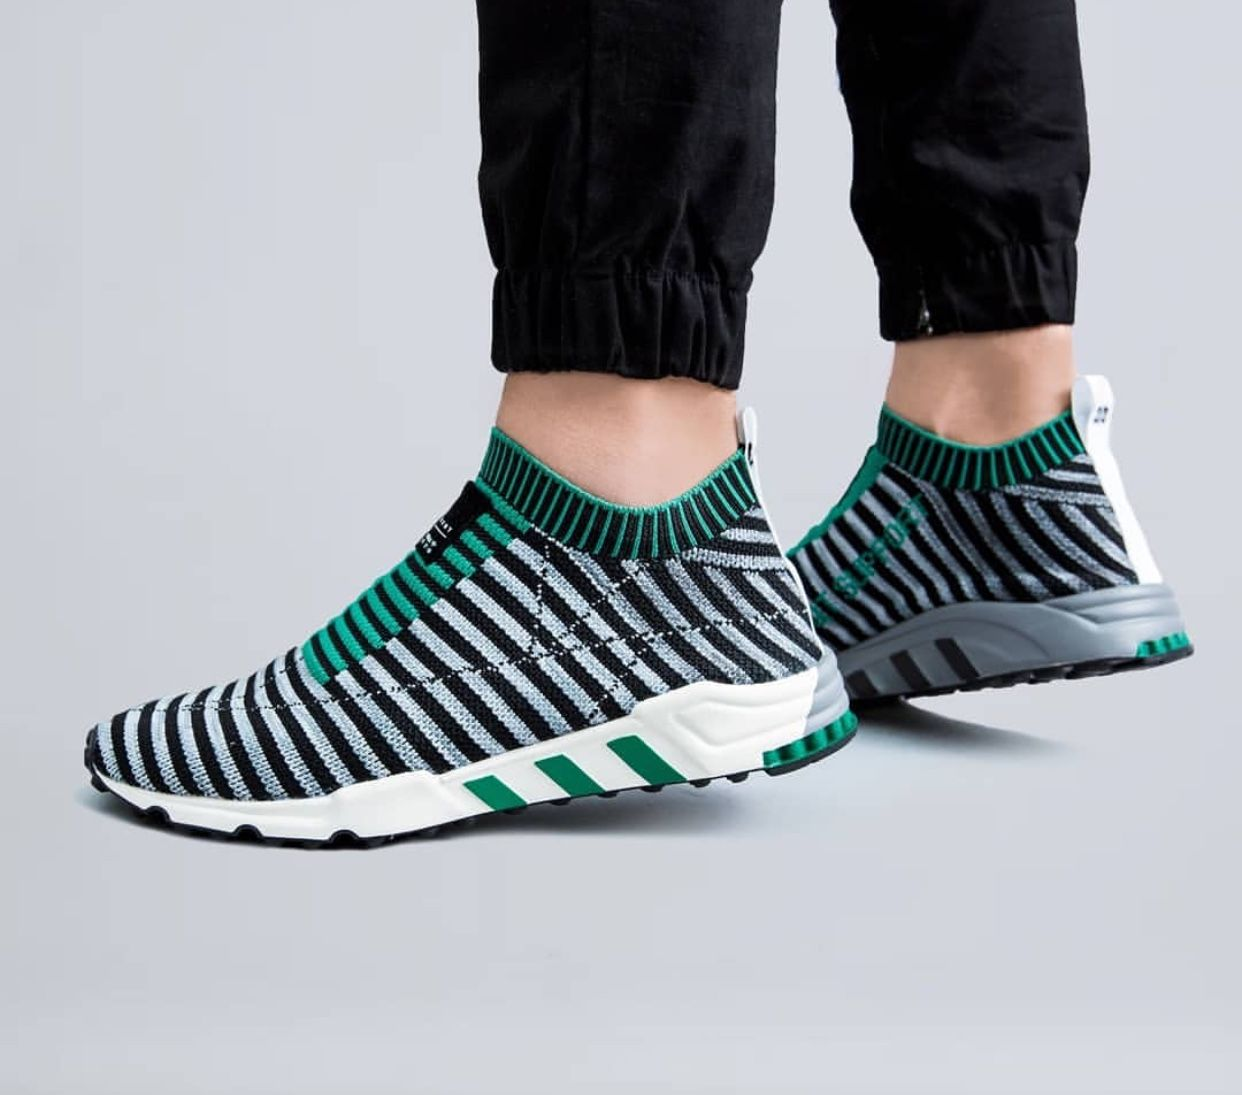 separation shoes c50c5 93780 Adidas eqt support sk pk